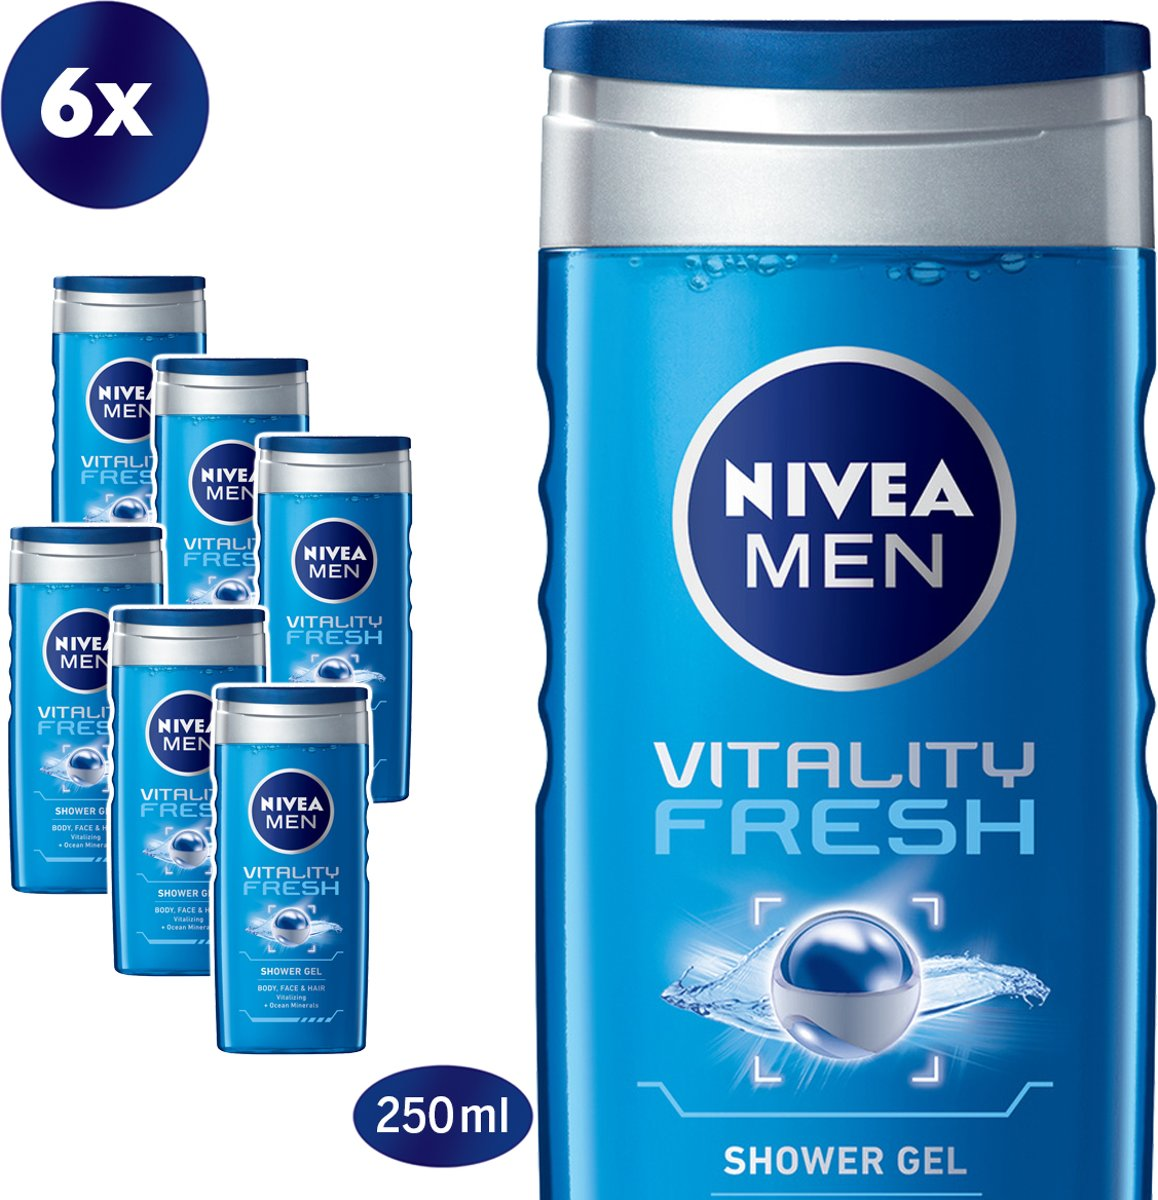 NIVEA MEN Vitality Fresh Douchegel - 6 x 250 ml - Voordeelverpakking